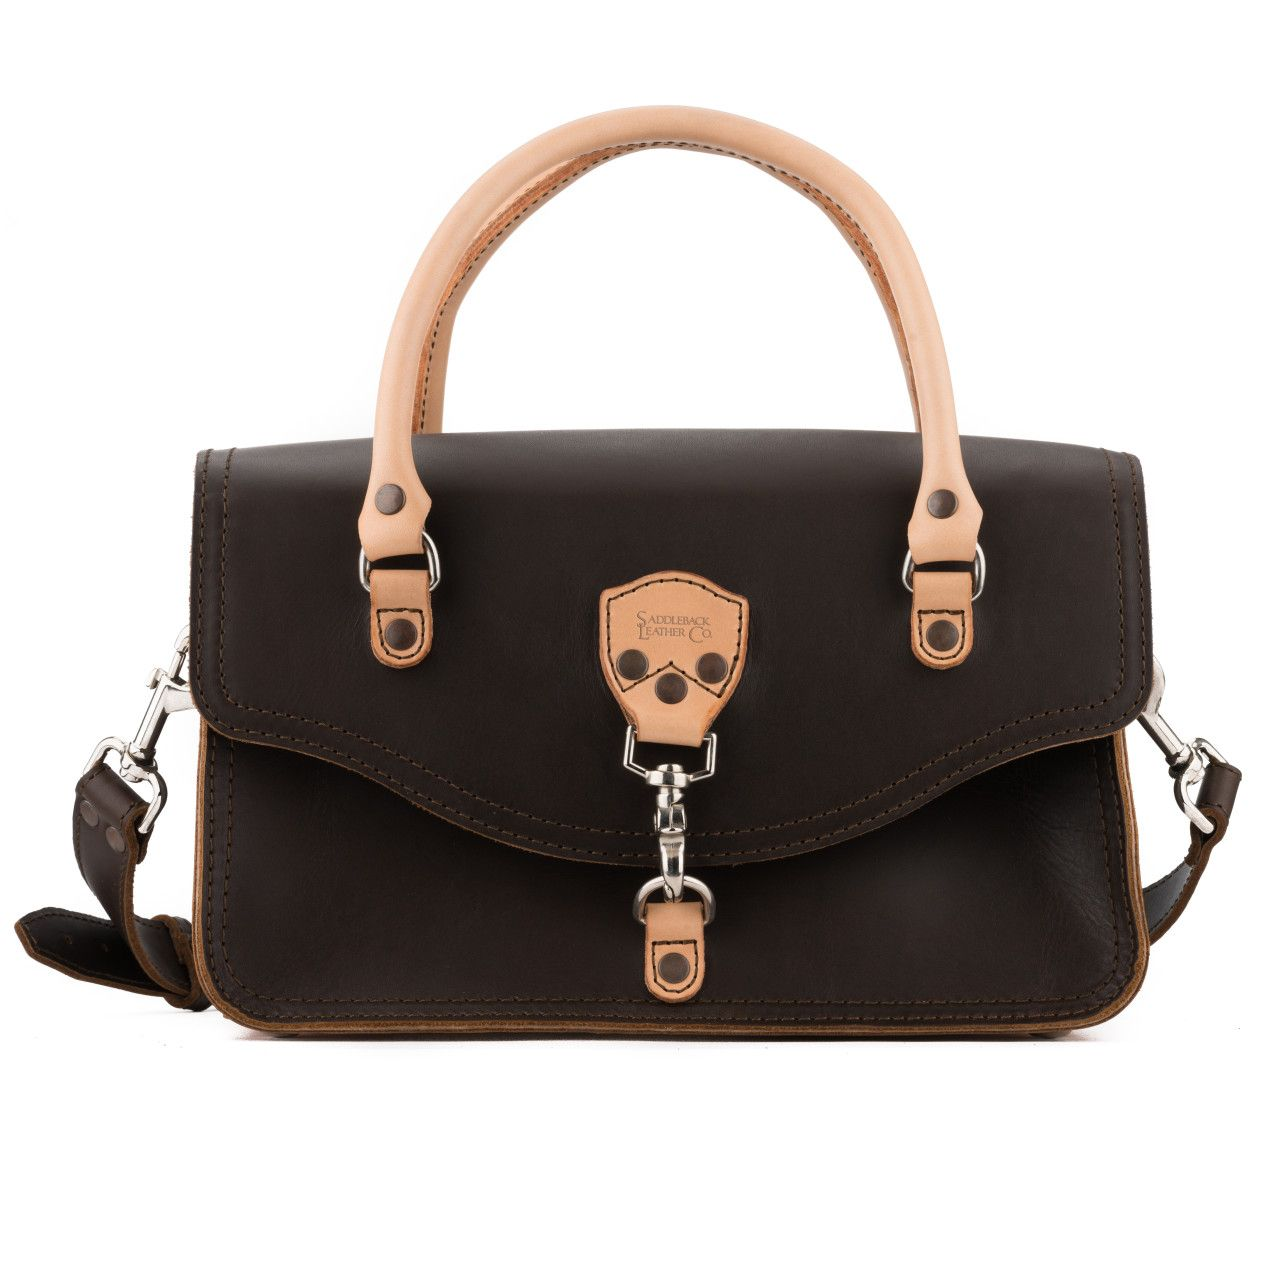 leather satchel purse in dark coffee brown leather